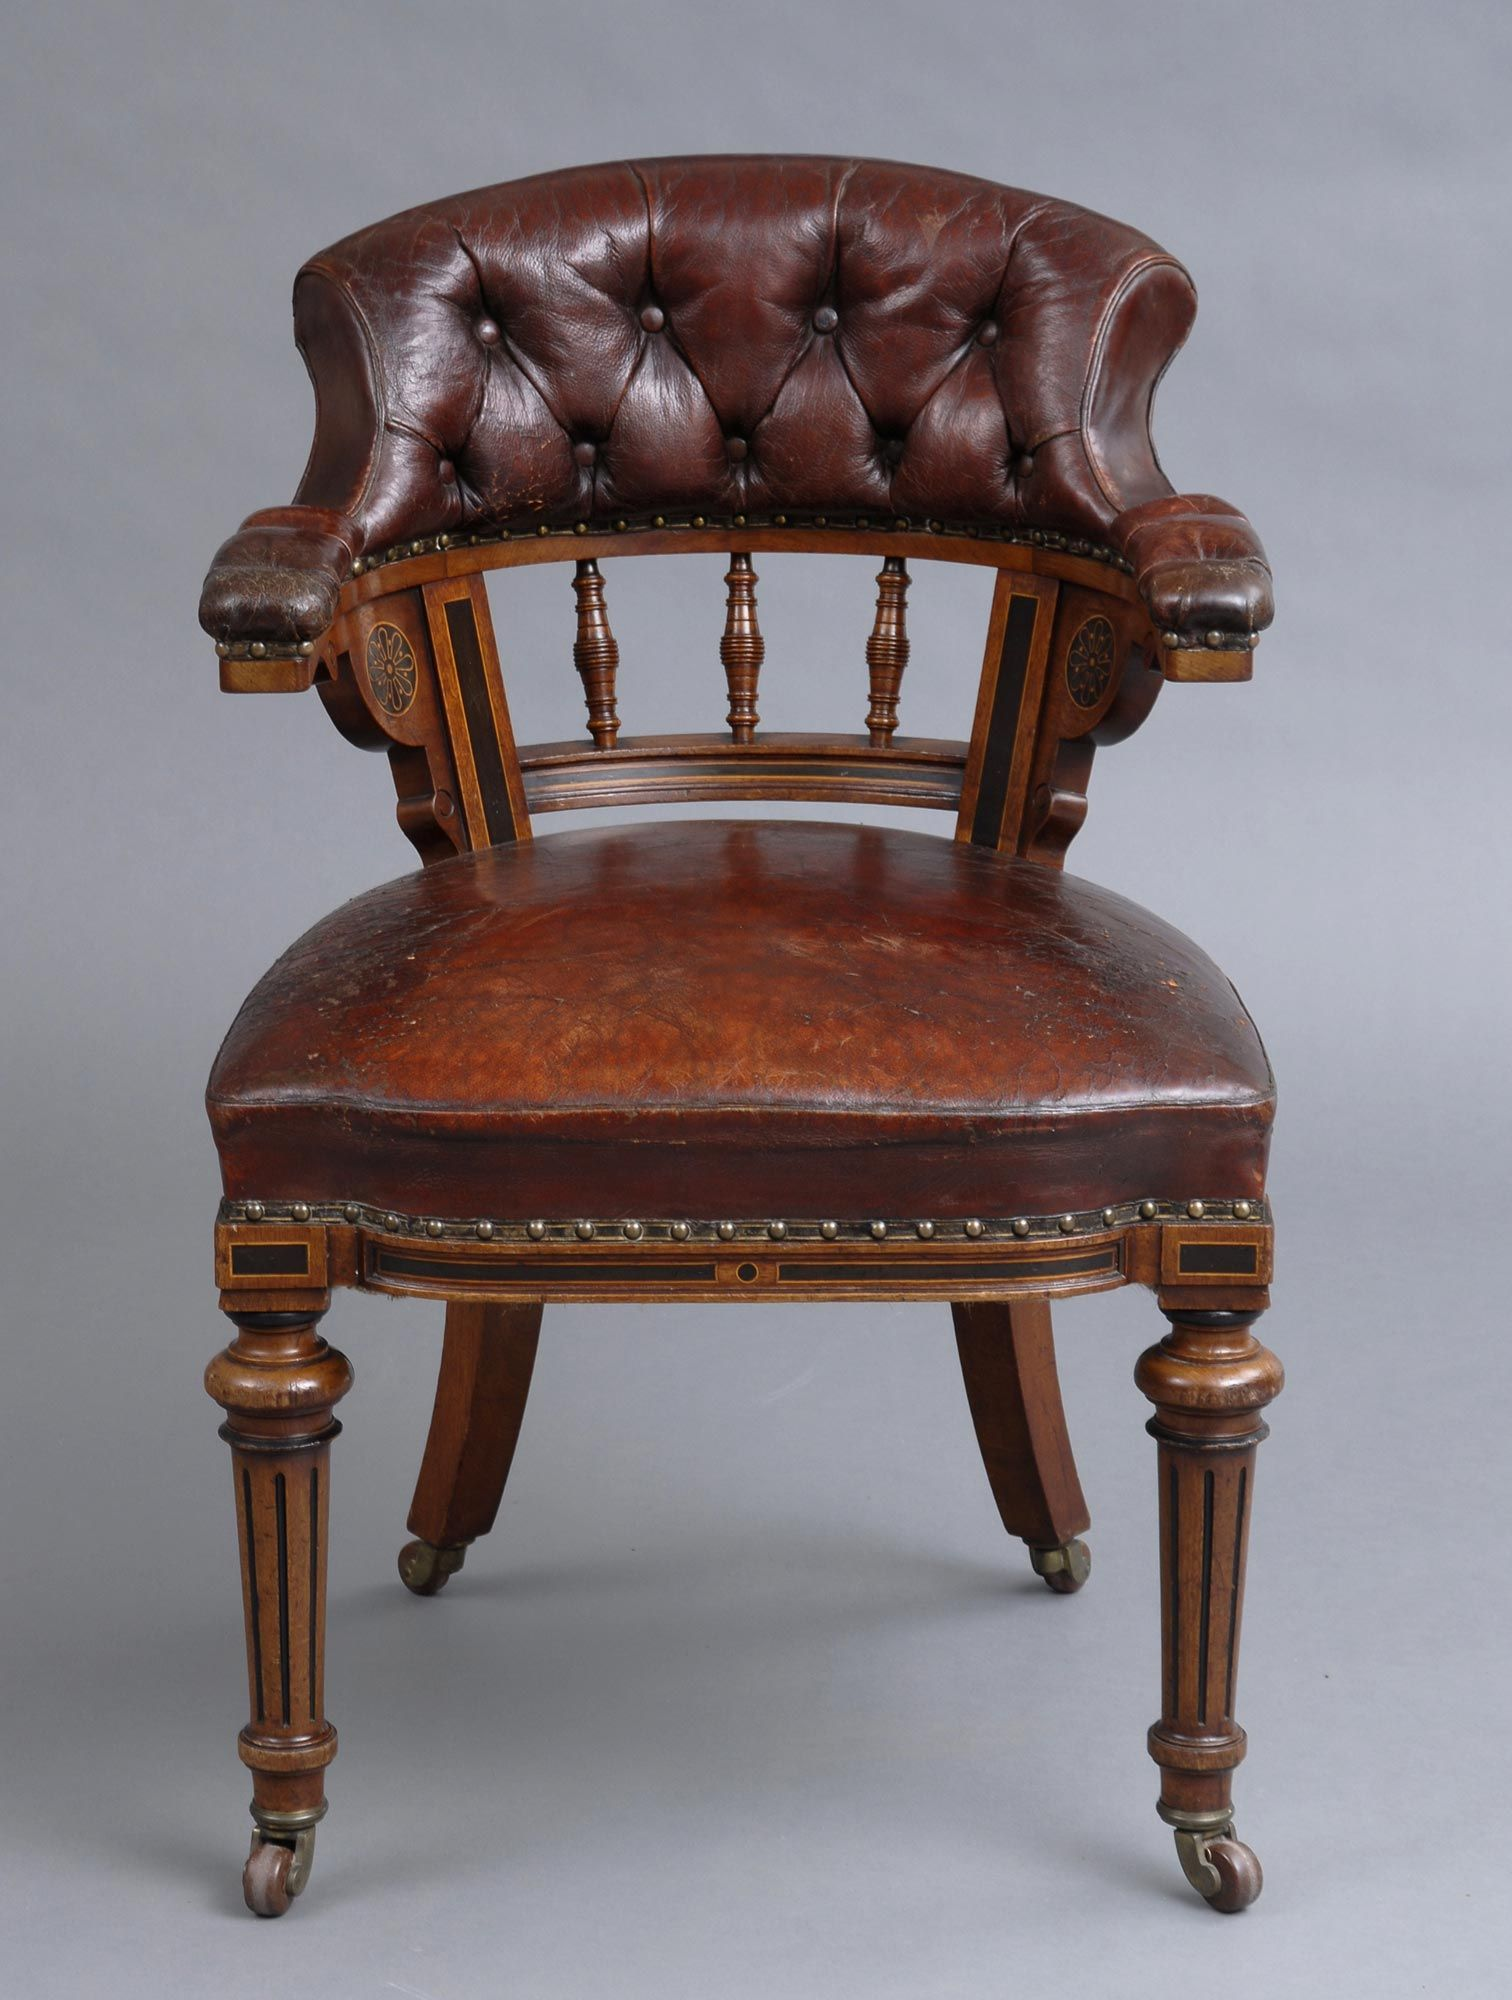 Product Victorian Oak Desk Chair Leather Chair Chair Victorian Desk